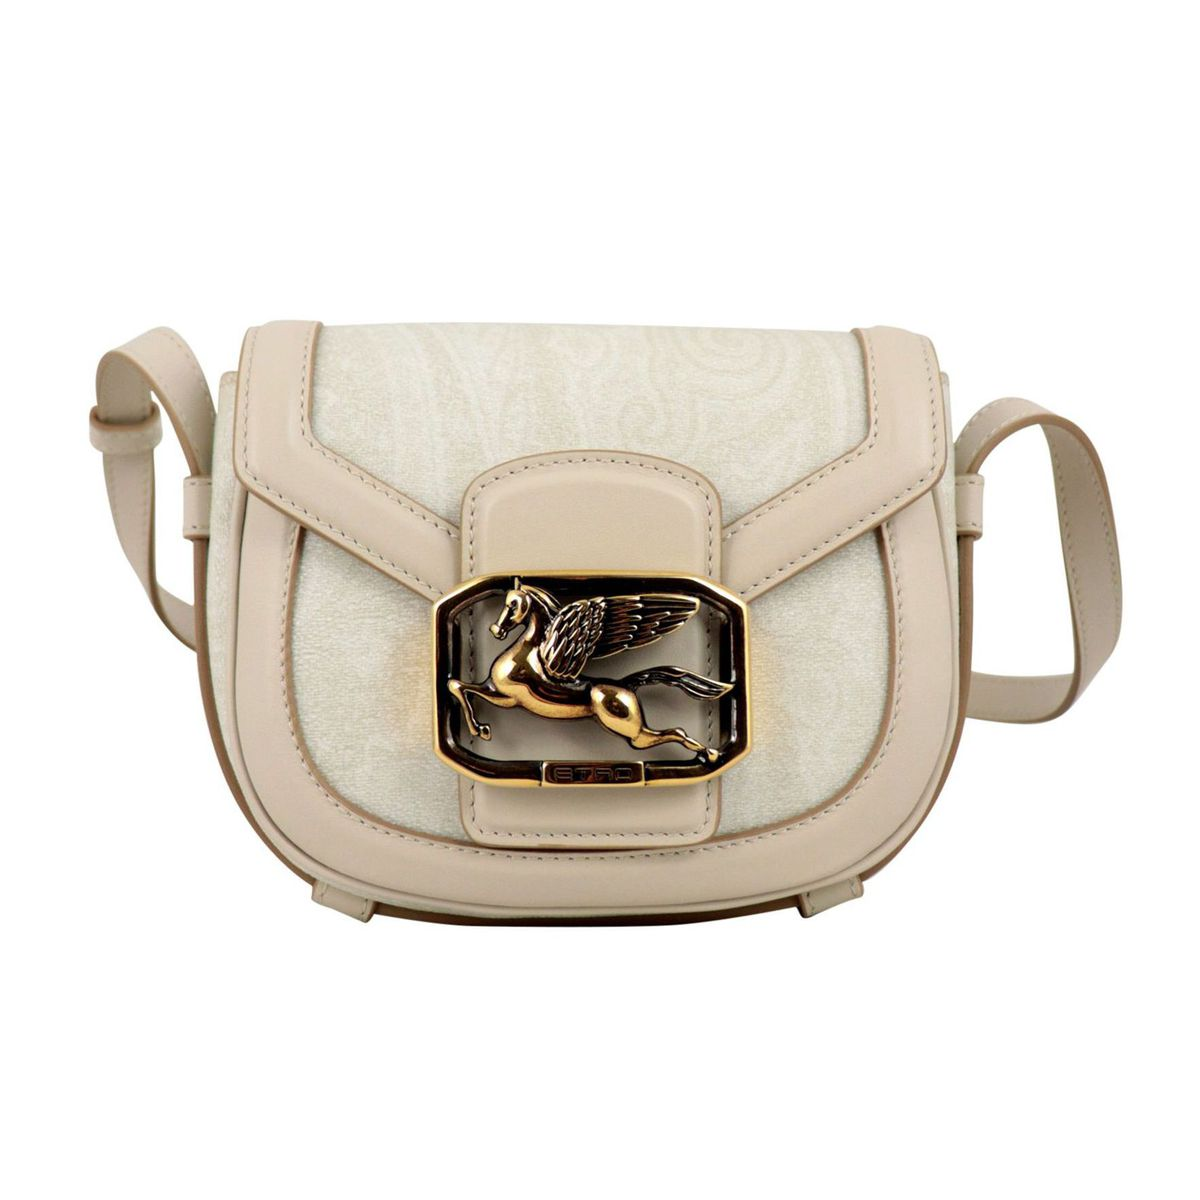 Pegaso shoulder bag in coated cotton canvas with Paisley print Cream Etro